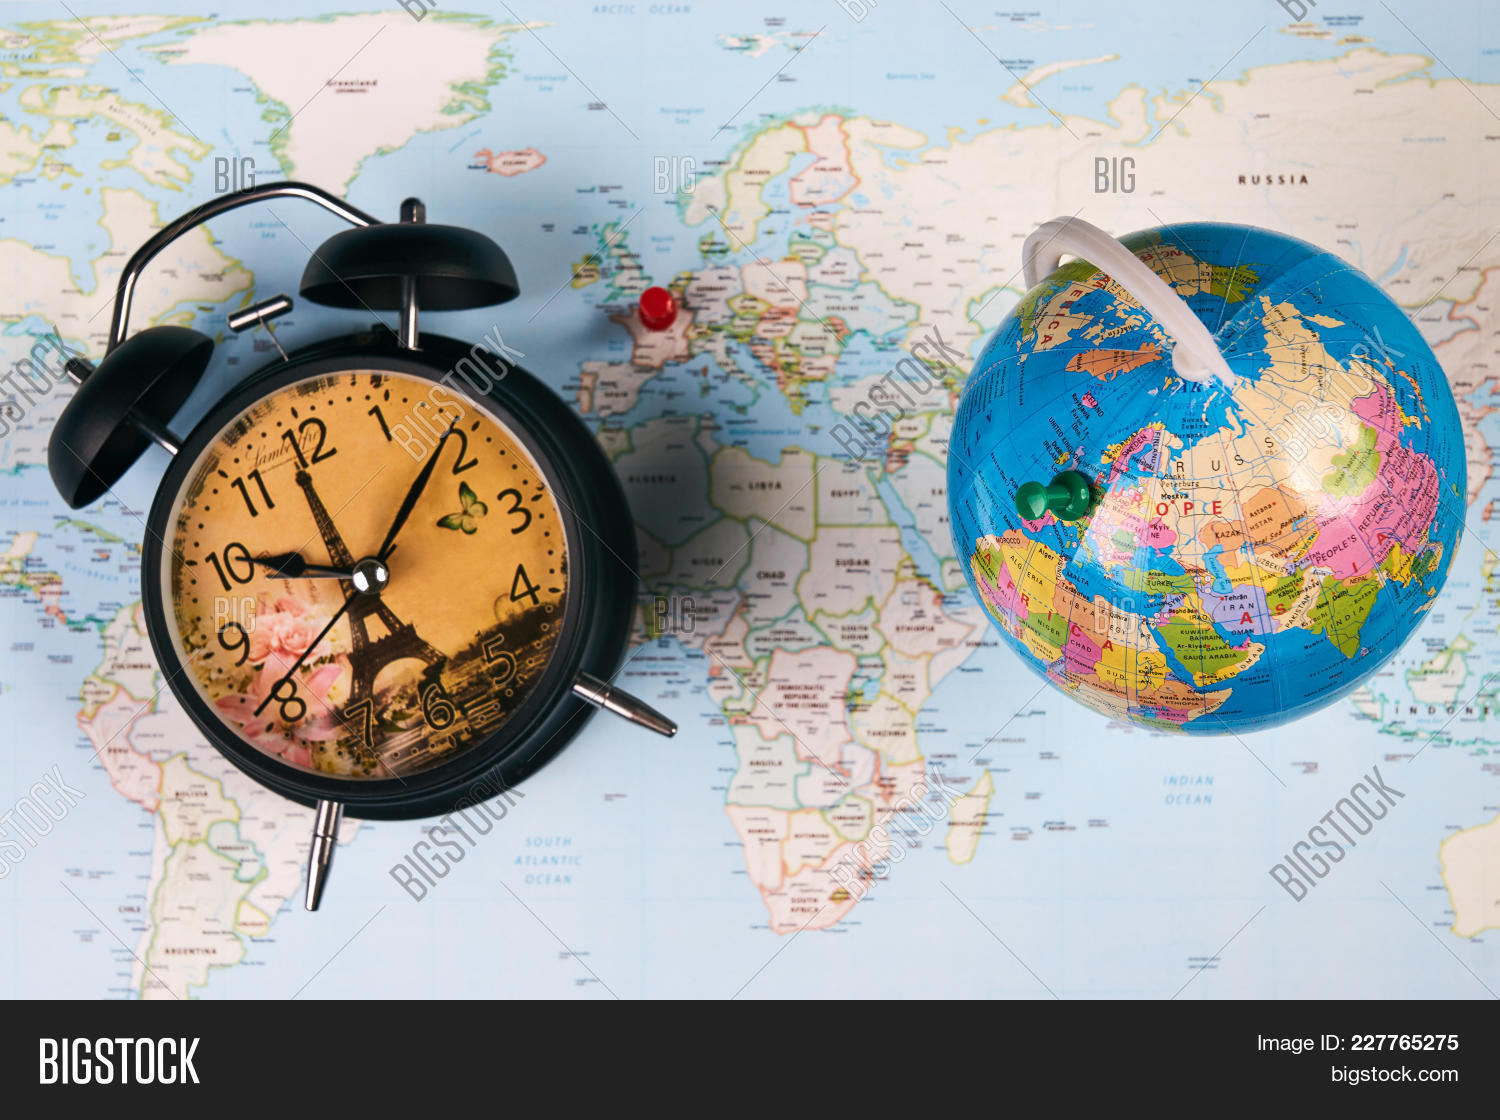 Planing travel france paris image photo bigstock planing for travel to france paris with worldmap globe and alarm clock travel time in gumiabroncs Image collections